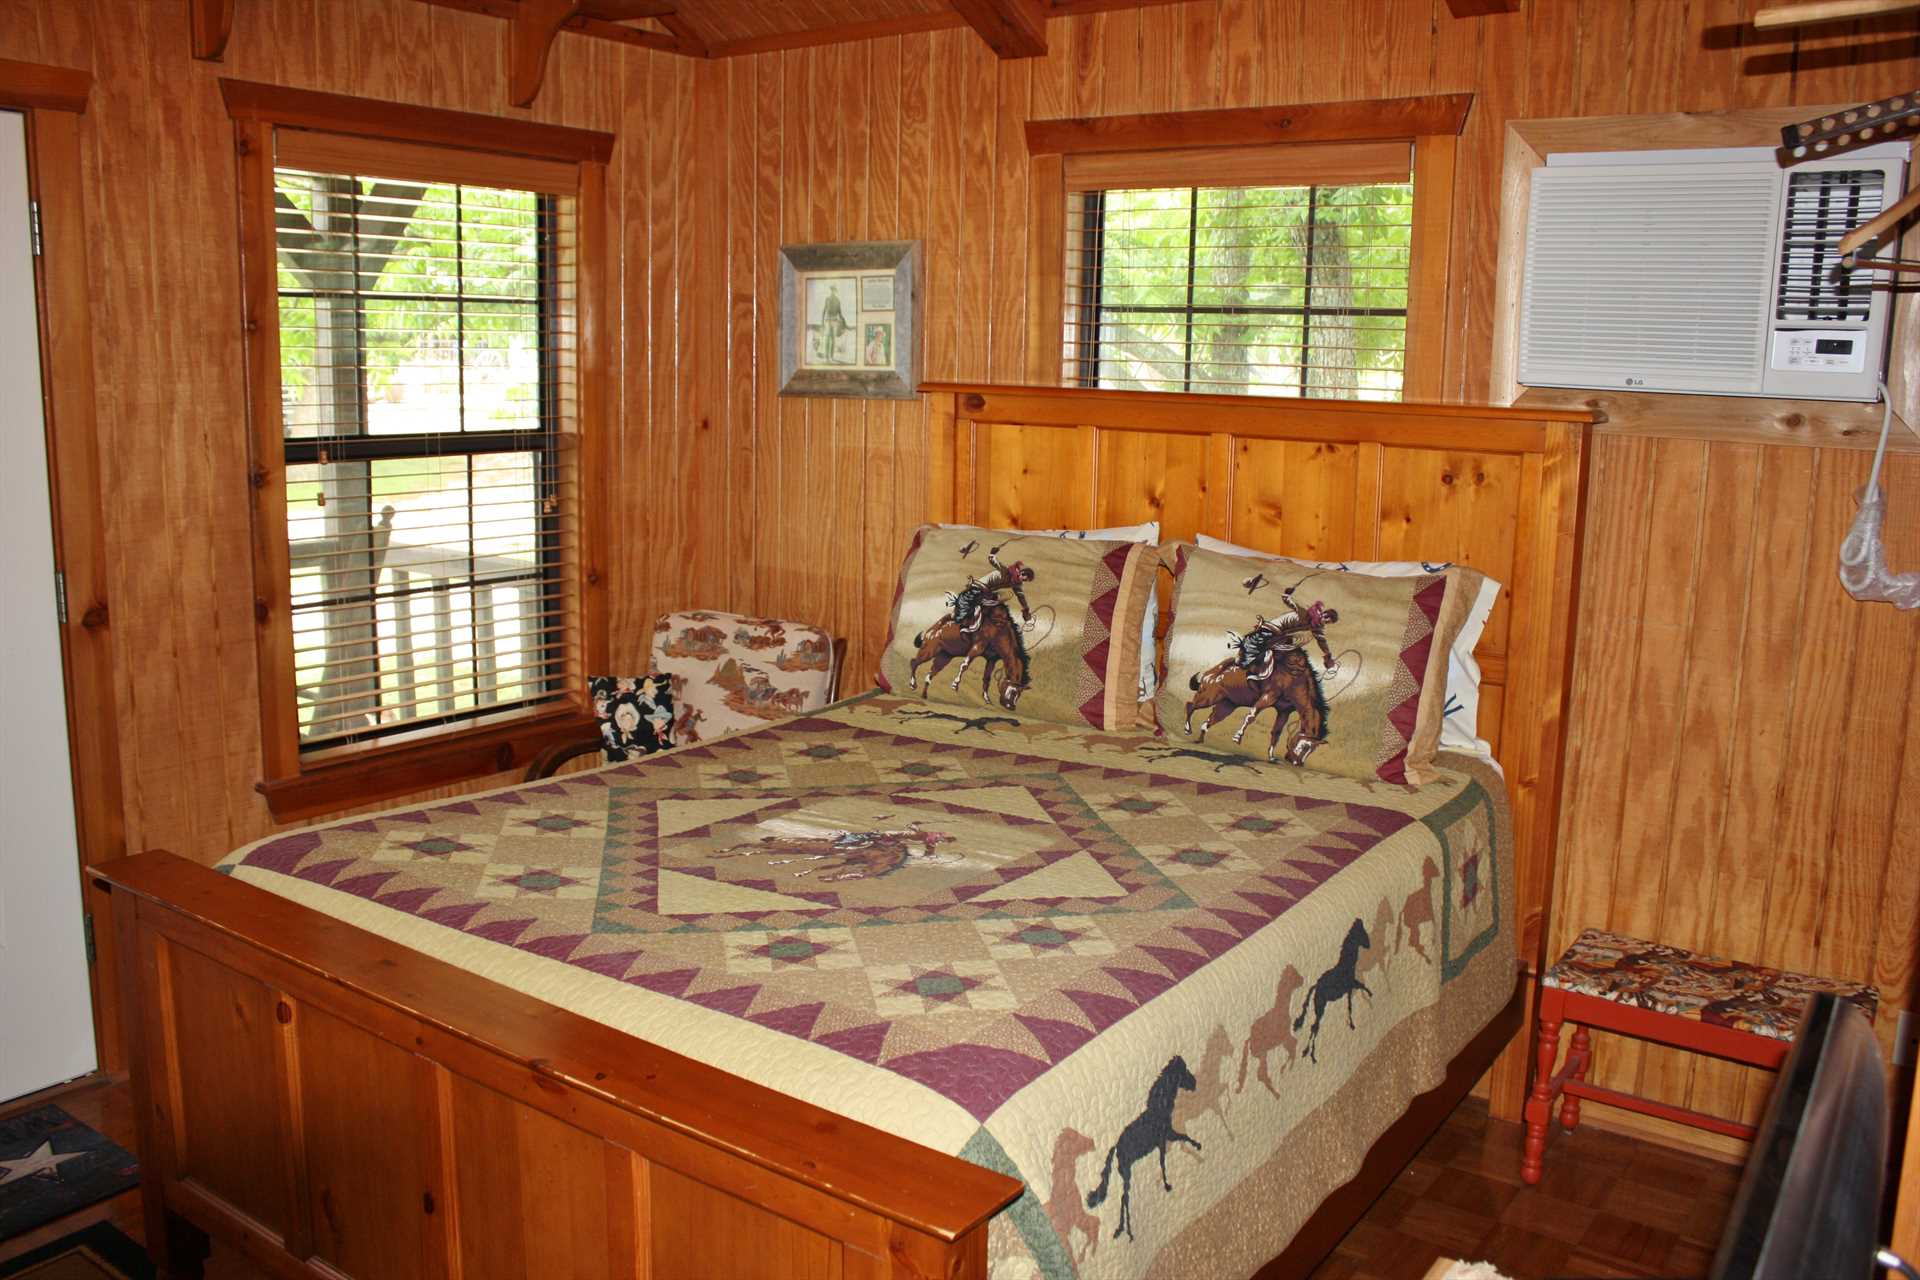 The framework of the huge and comfy queen bed matches the gorgeous woodwork you'll find throughout the cabin.